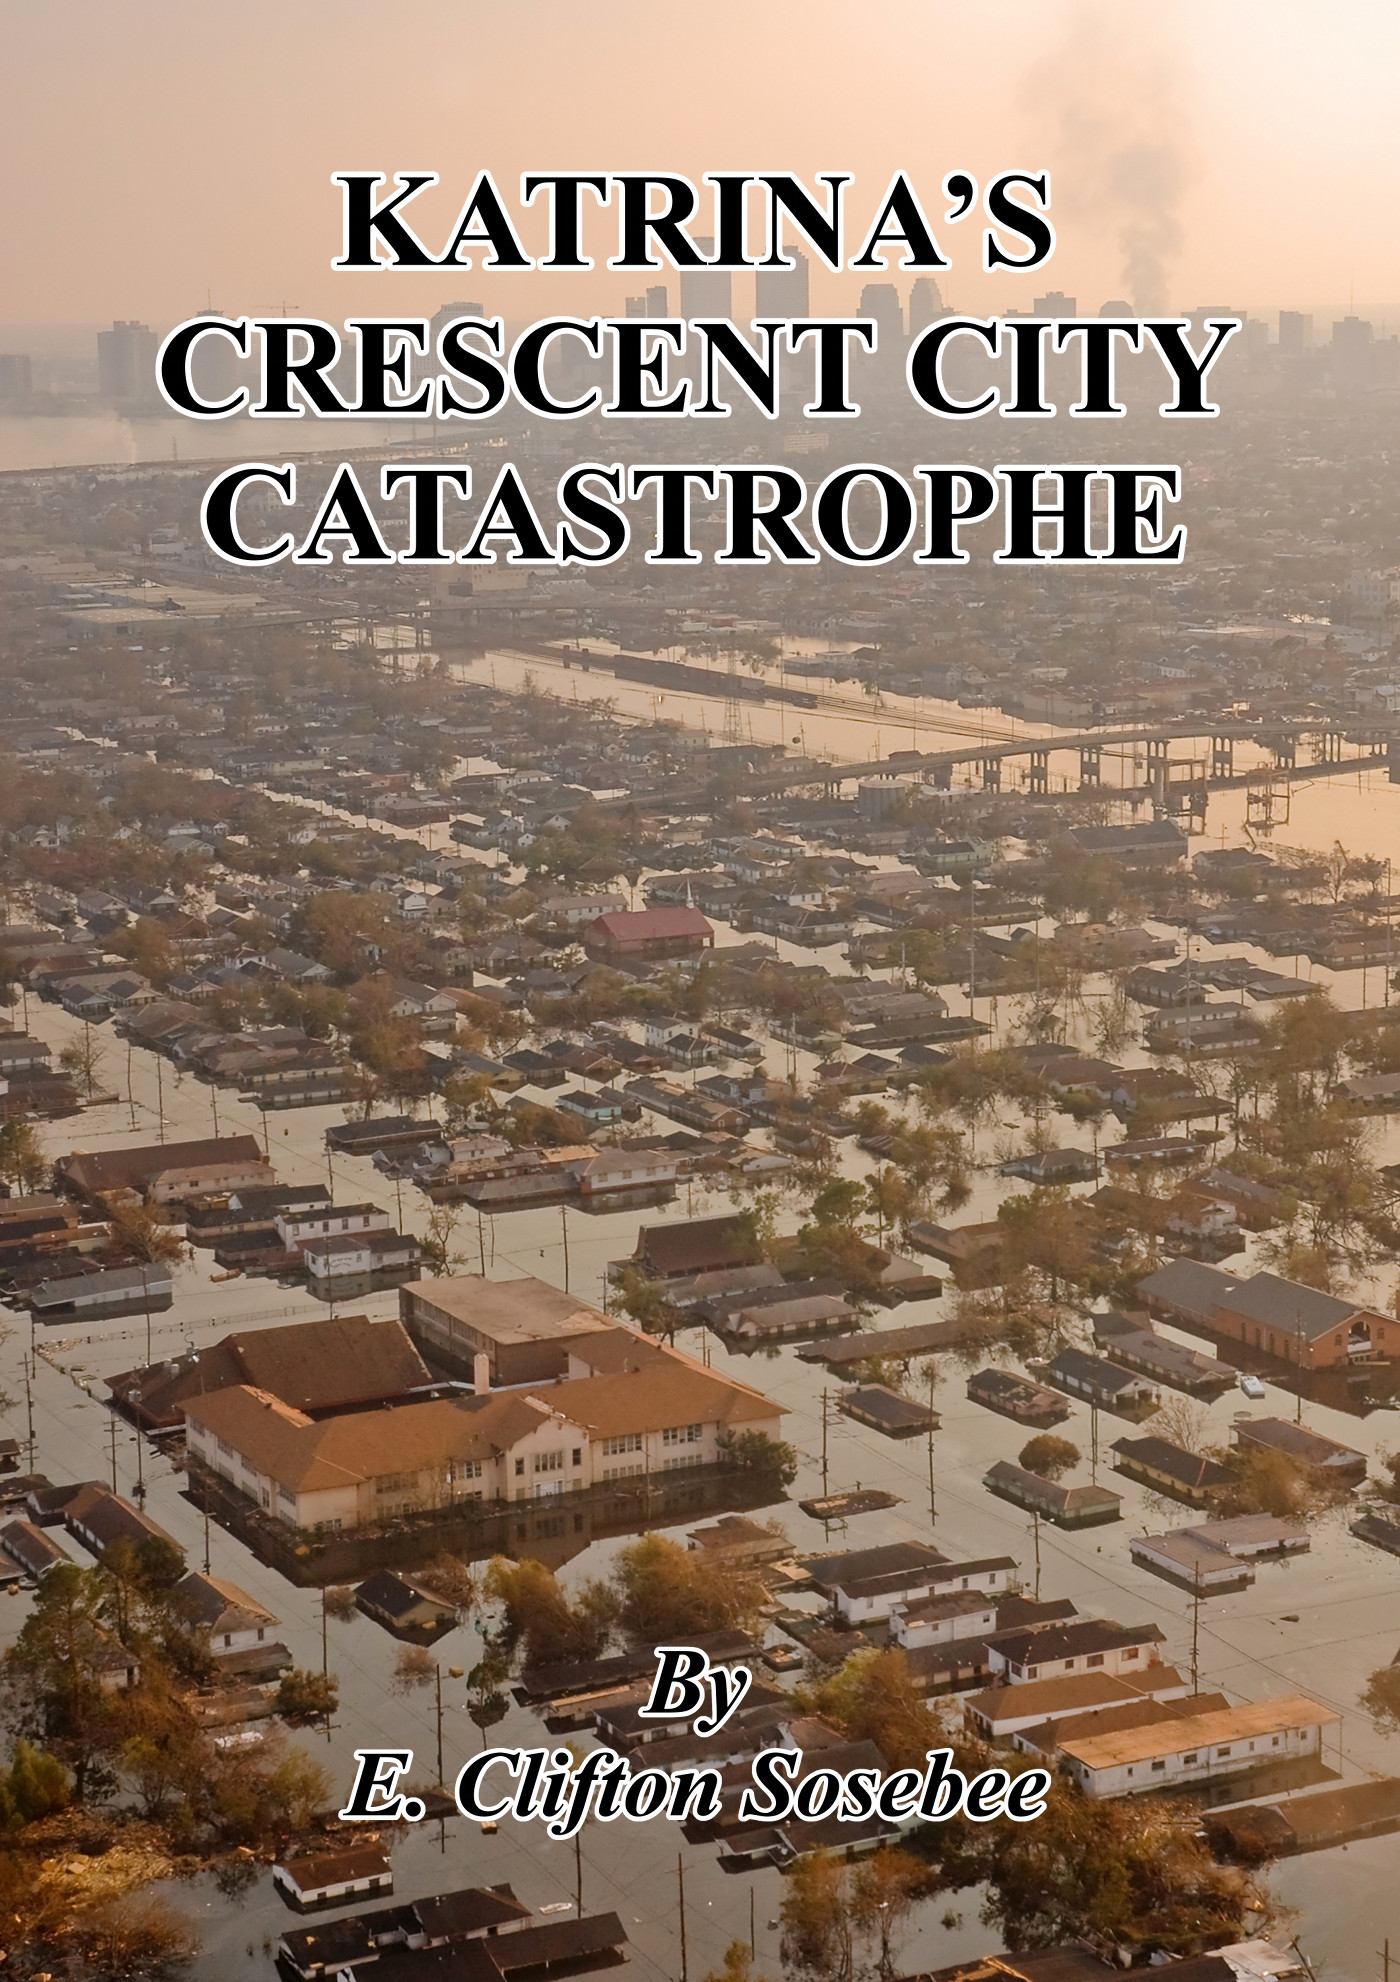 Katrina's Crescent City Catastrophe